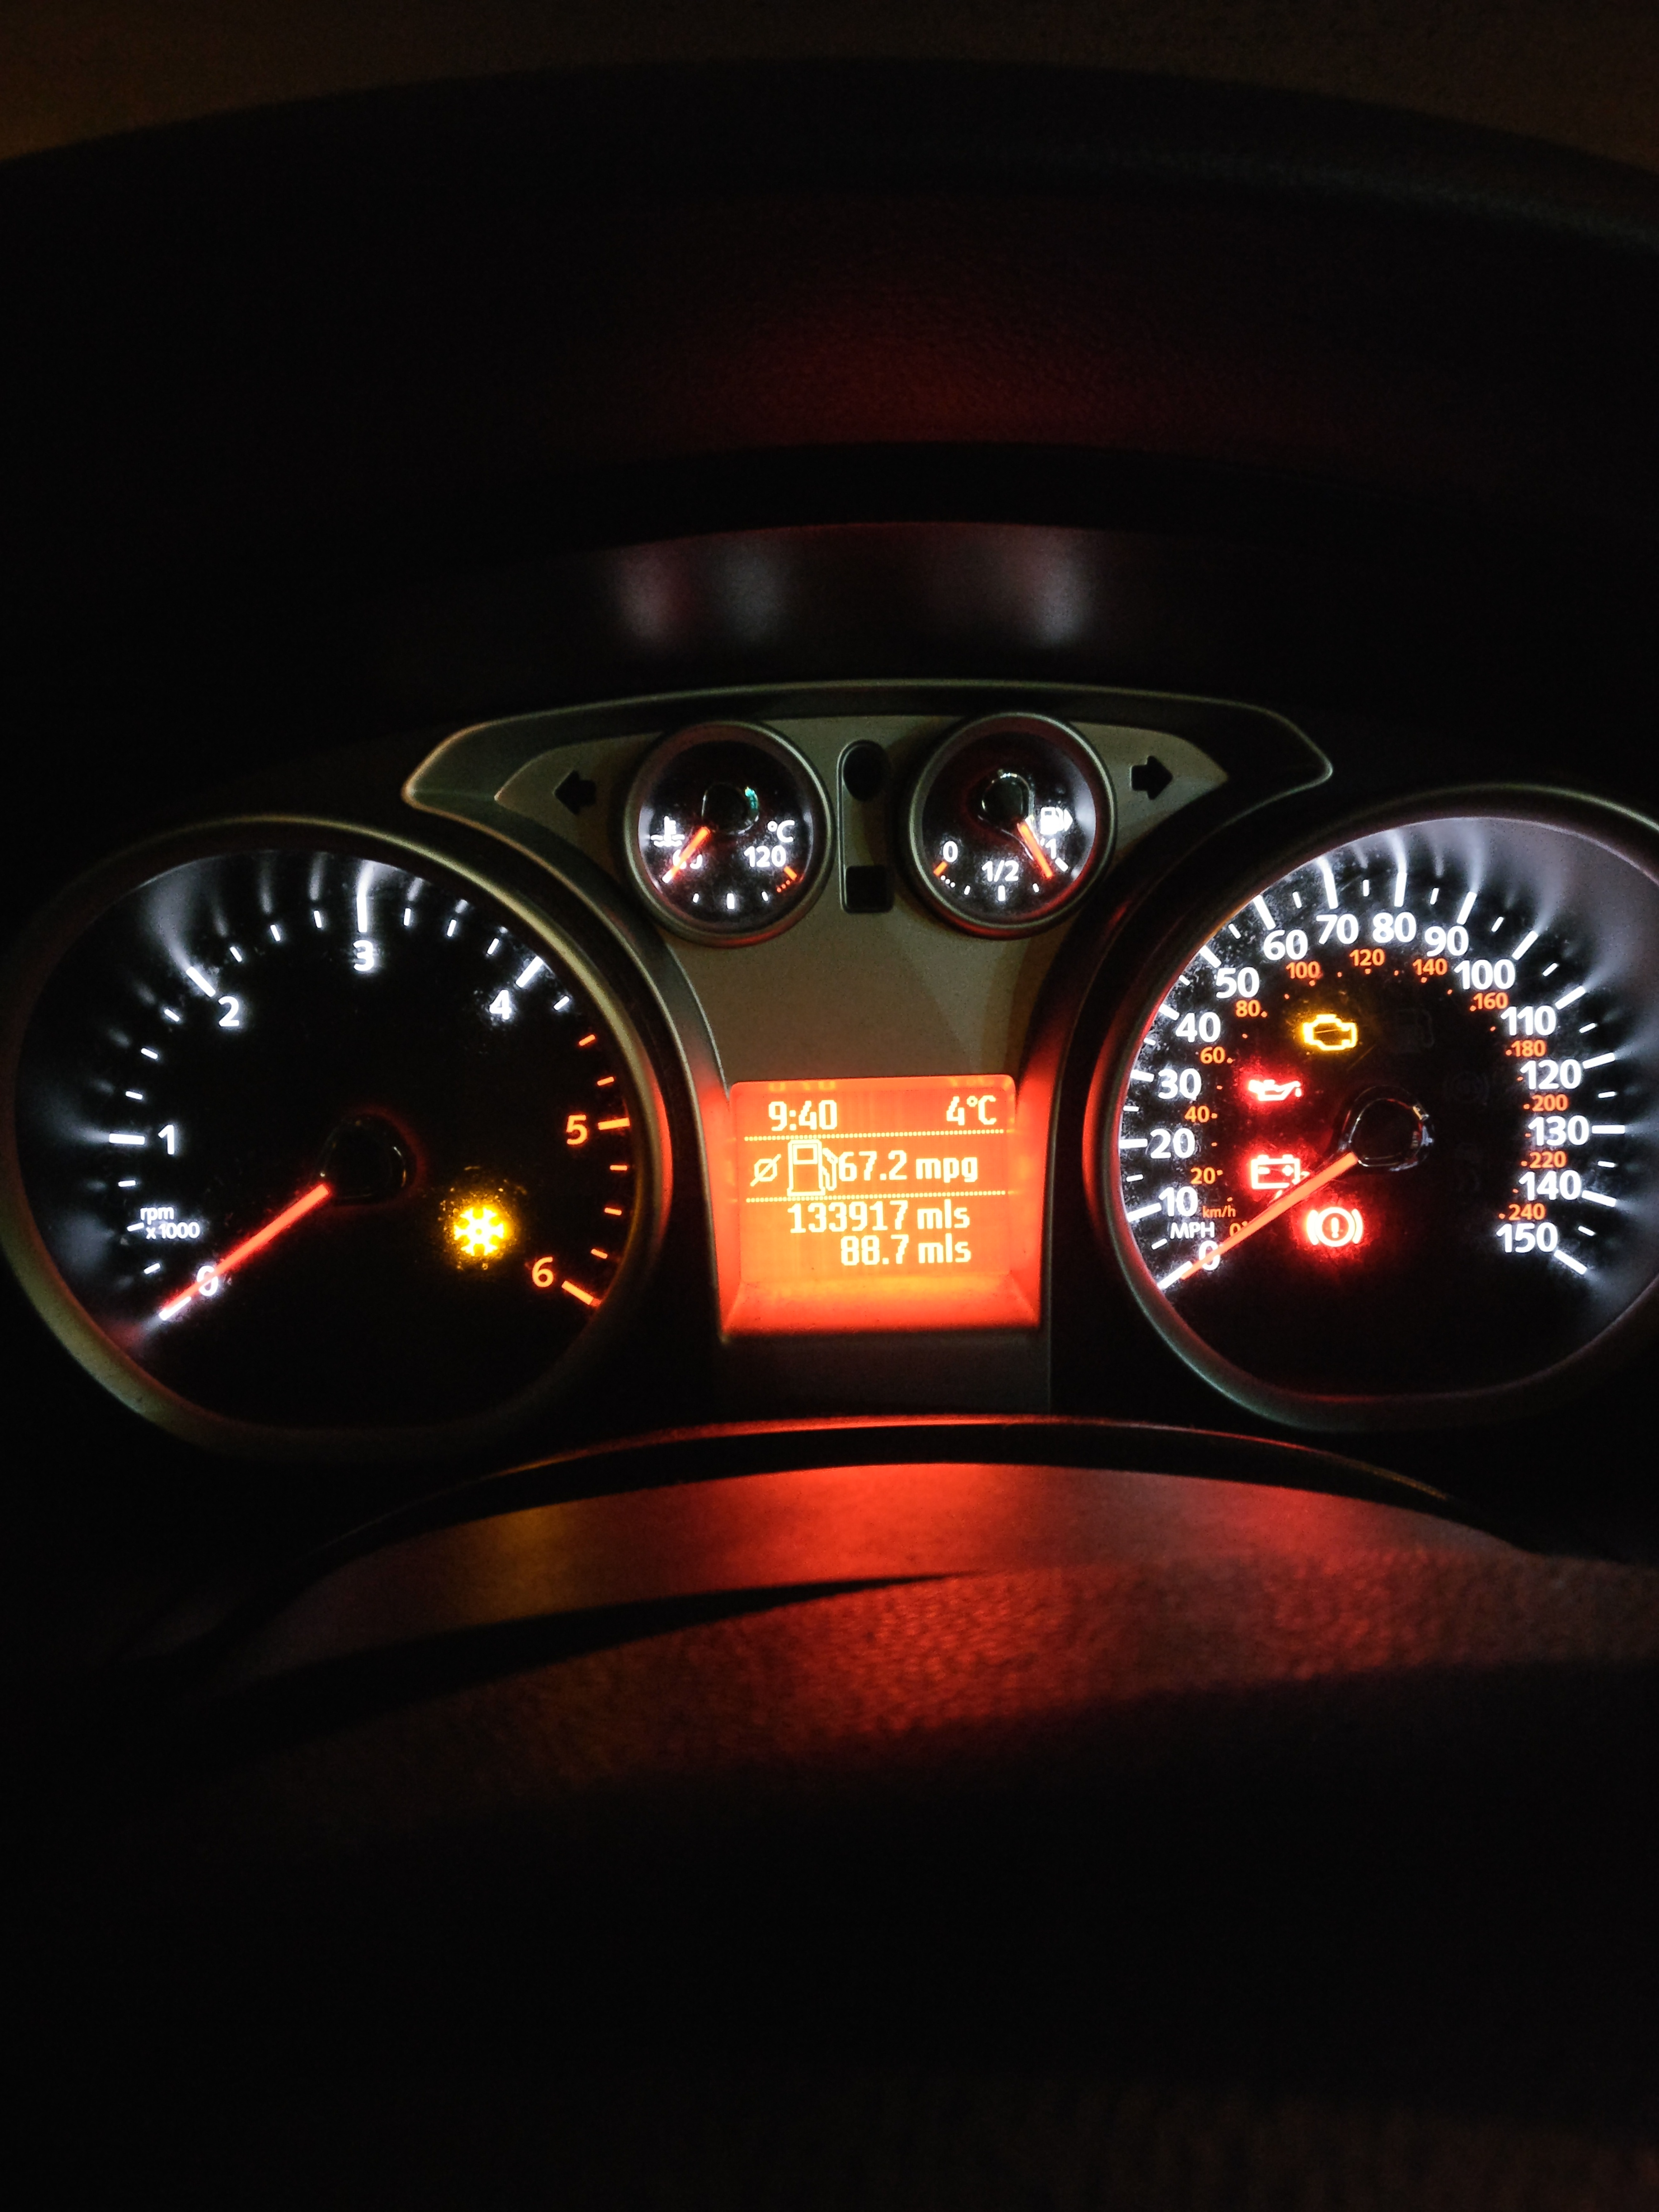 Ford Focus St Mpg : focus, Sudden, Focus, Owners, Forums